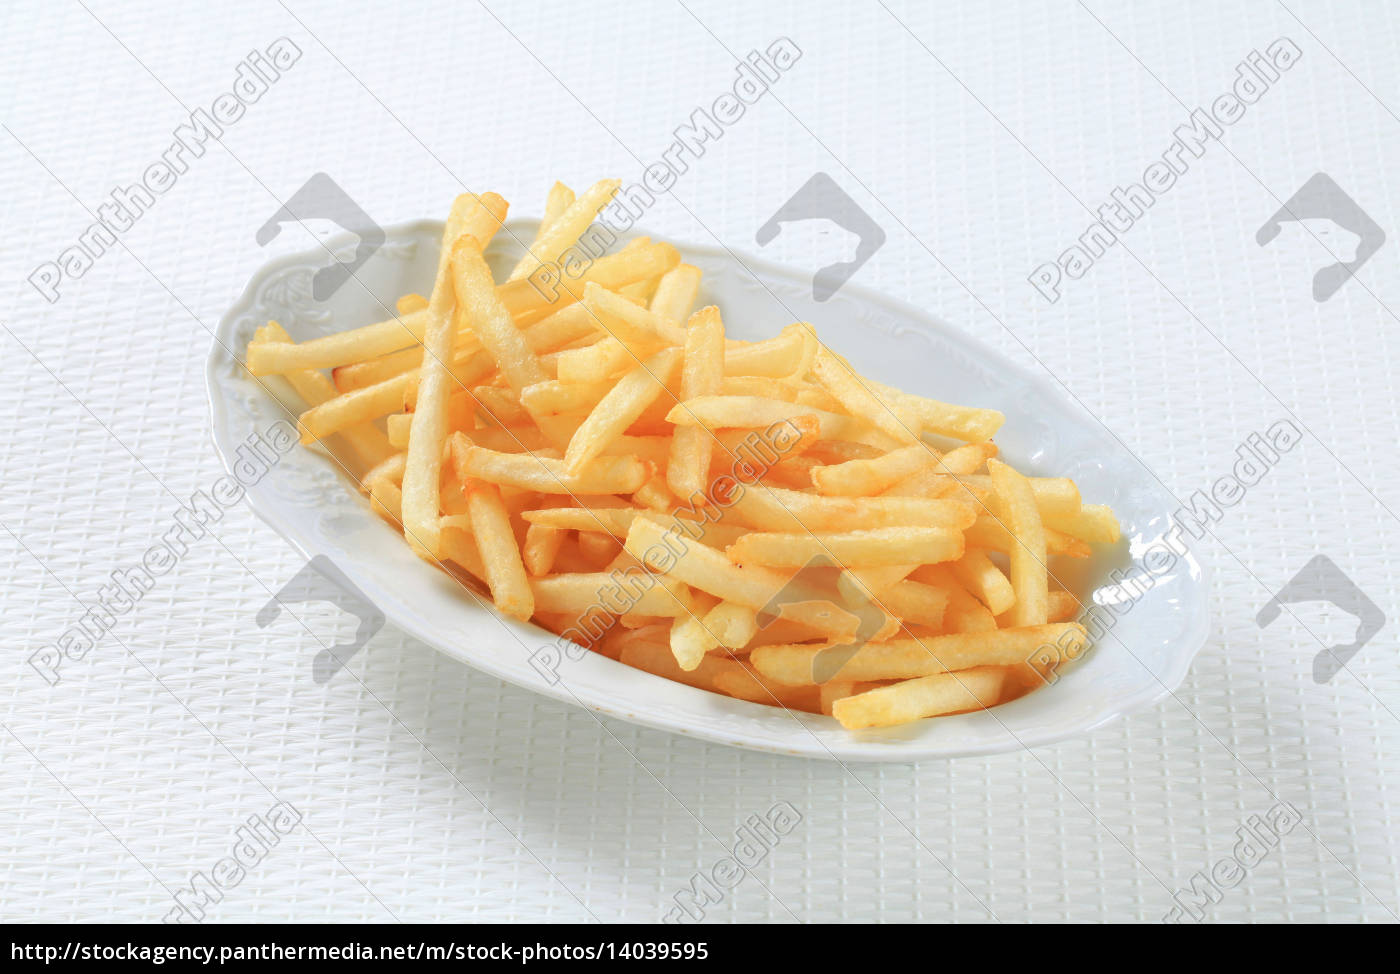 french, fries - 14039595